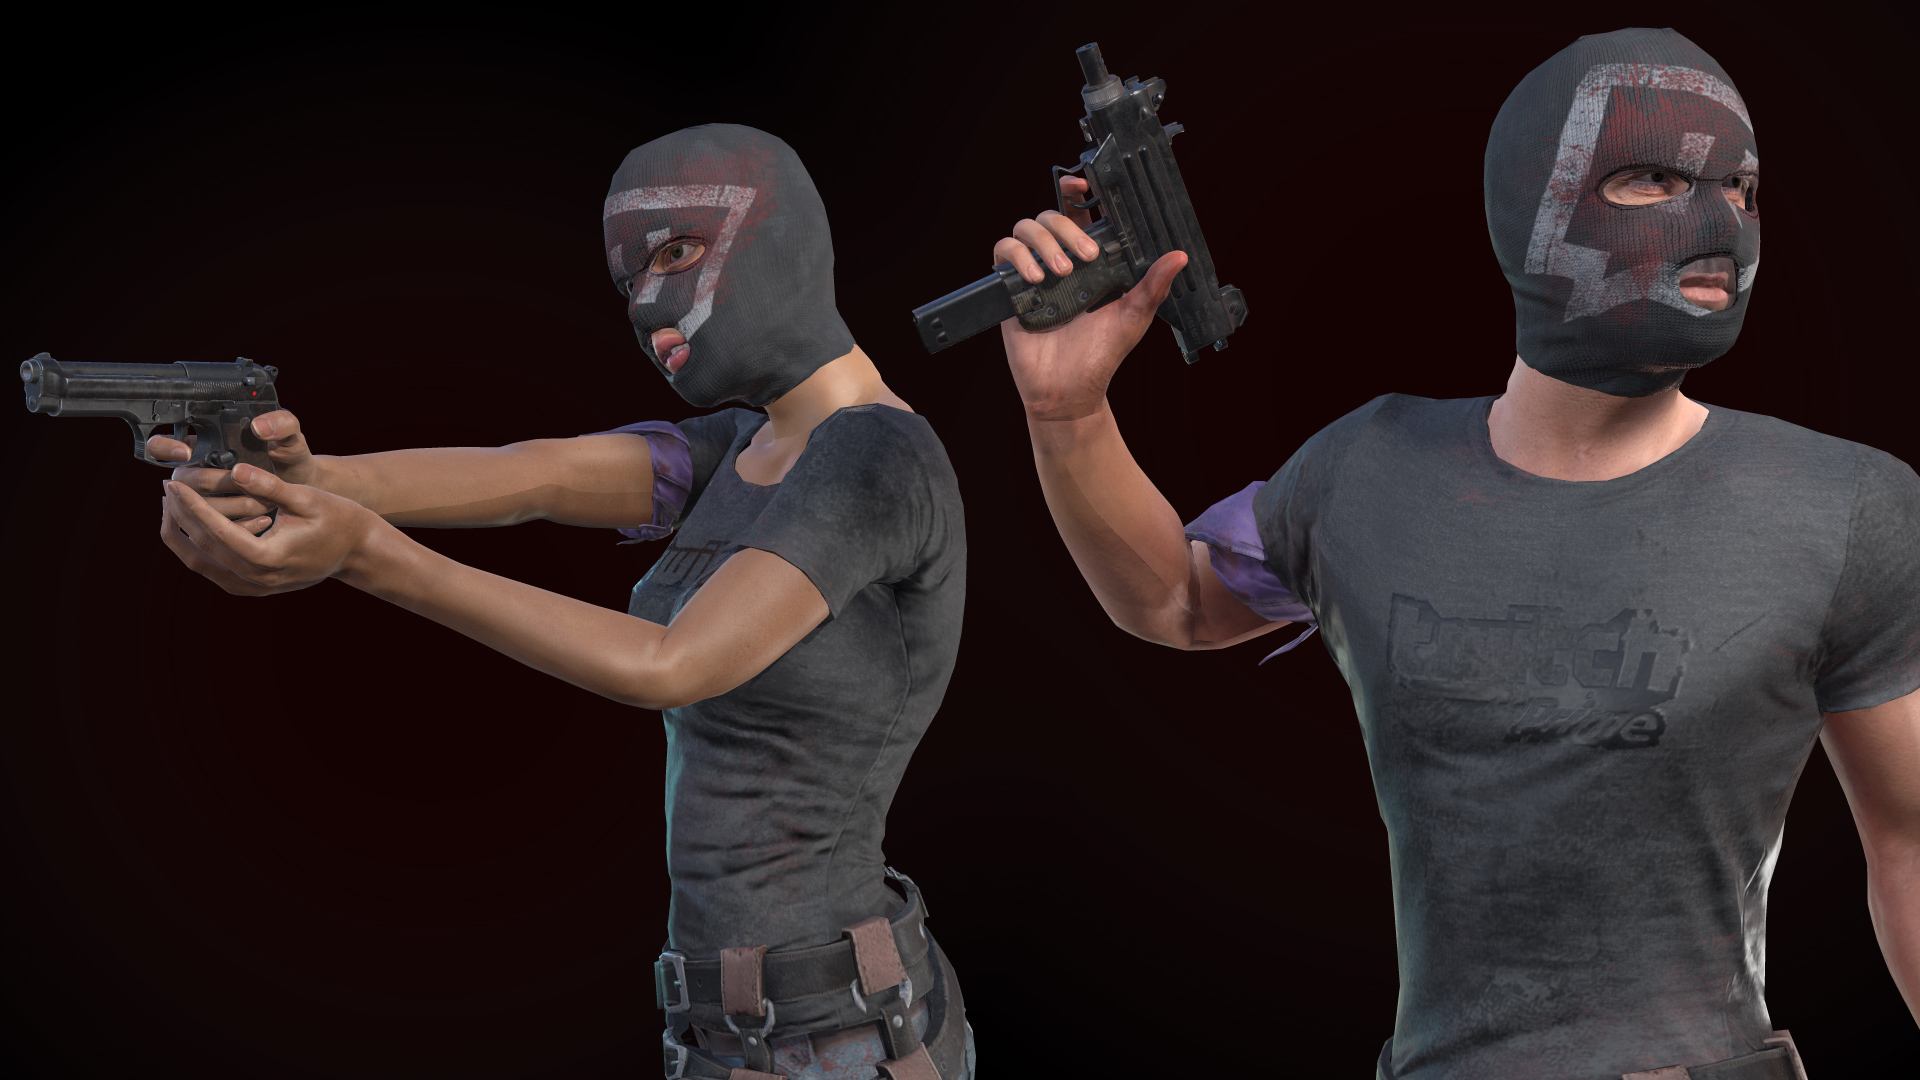 How to Get the PUBG Twitch Prime Pack   AllGamers